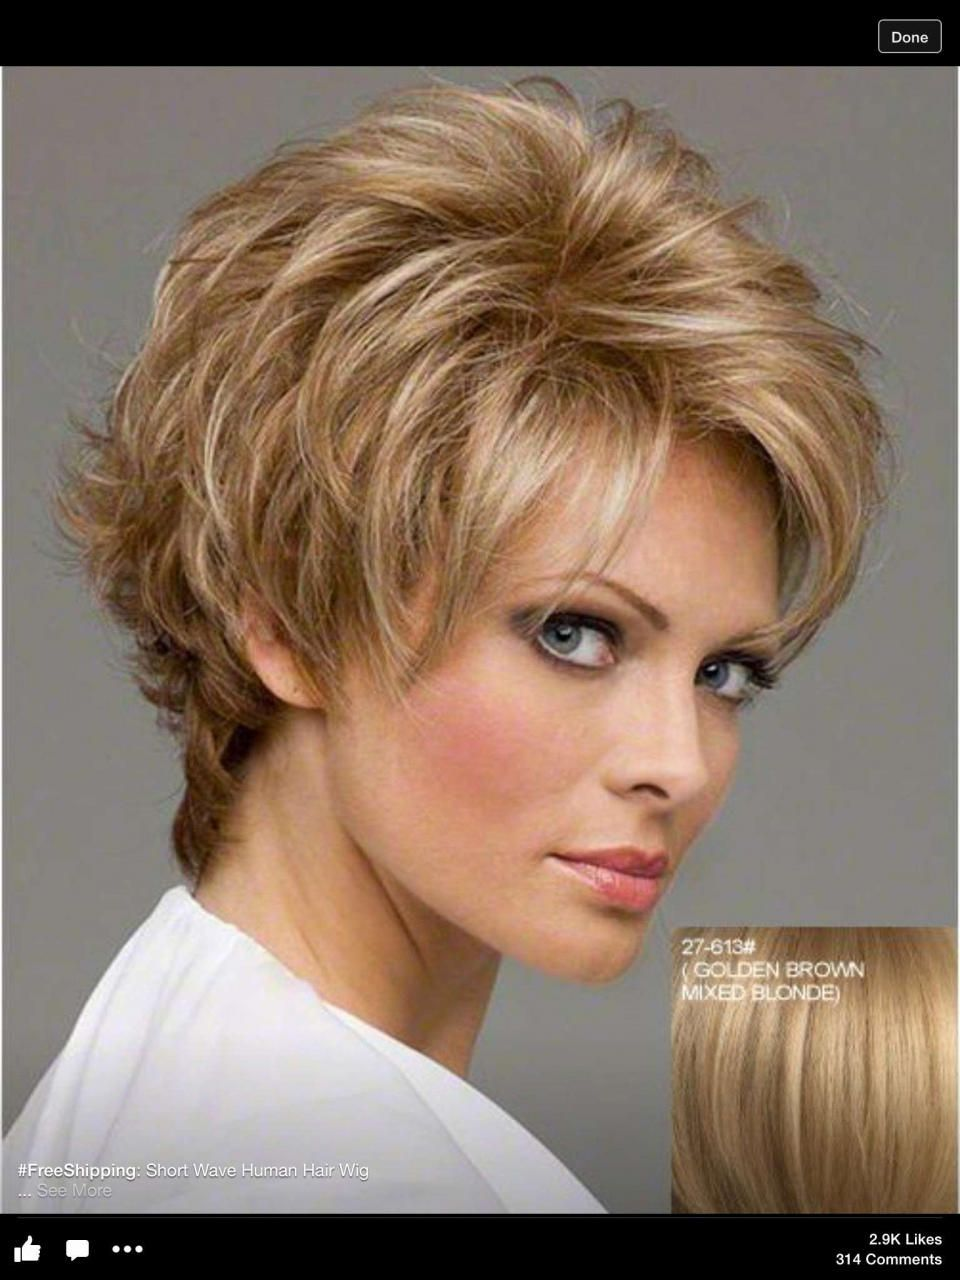 The 41 Best Short Haircuts and Hairstyles for Women Over 50 | Short thin hair, Haircuts for over ...